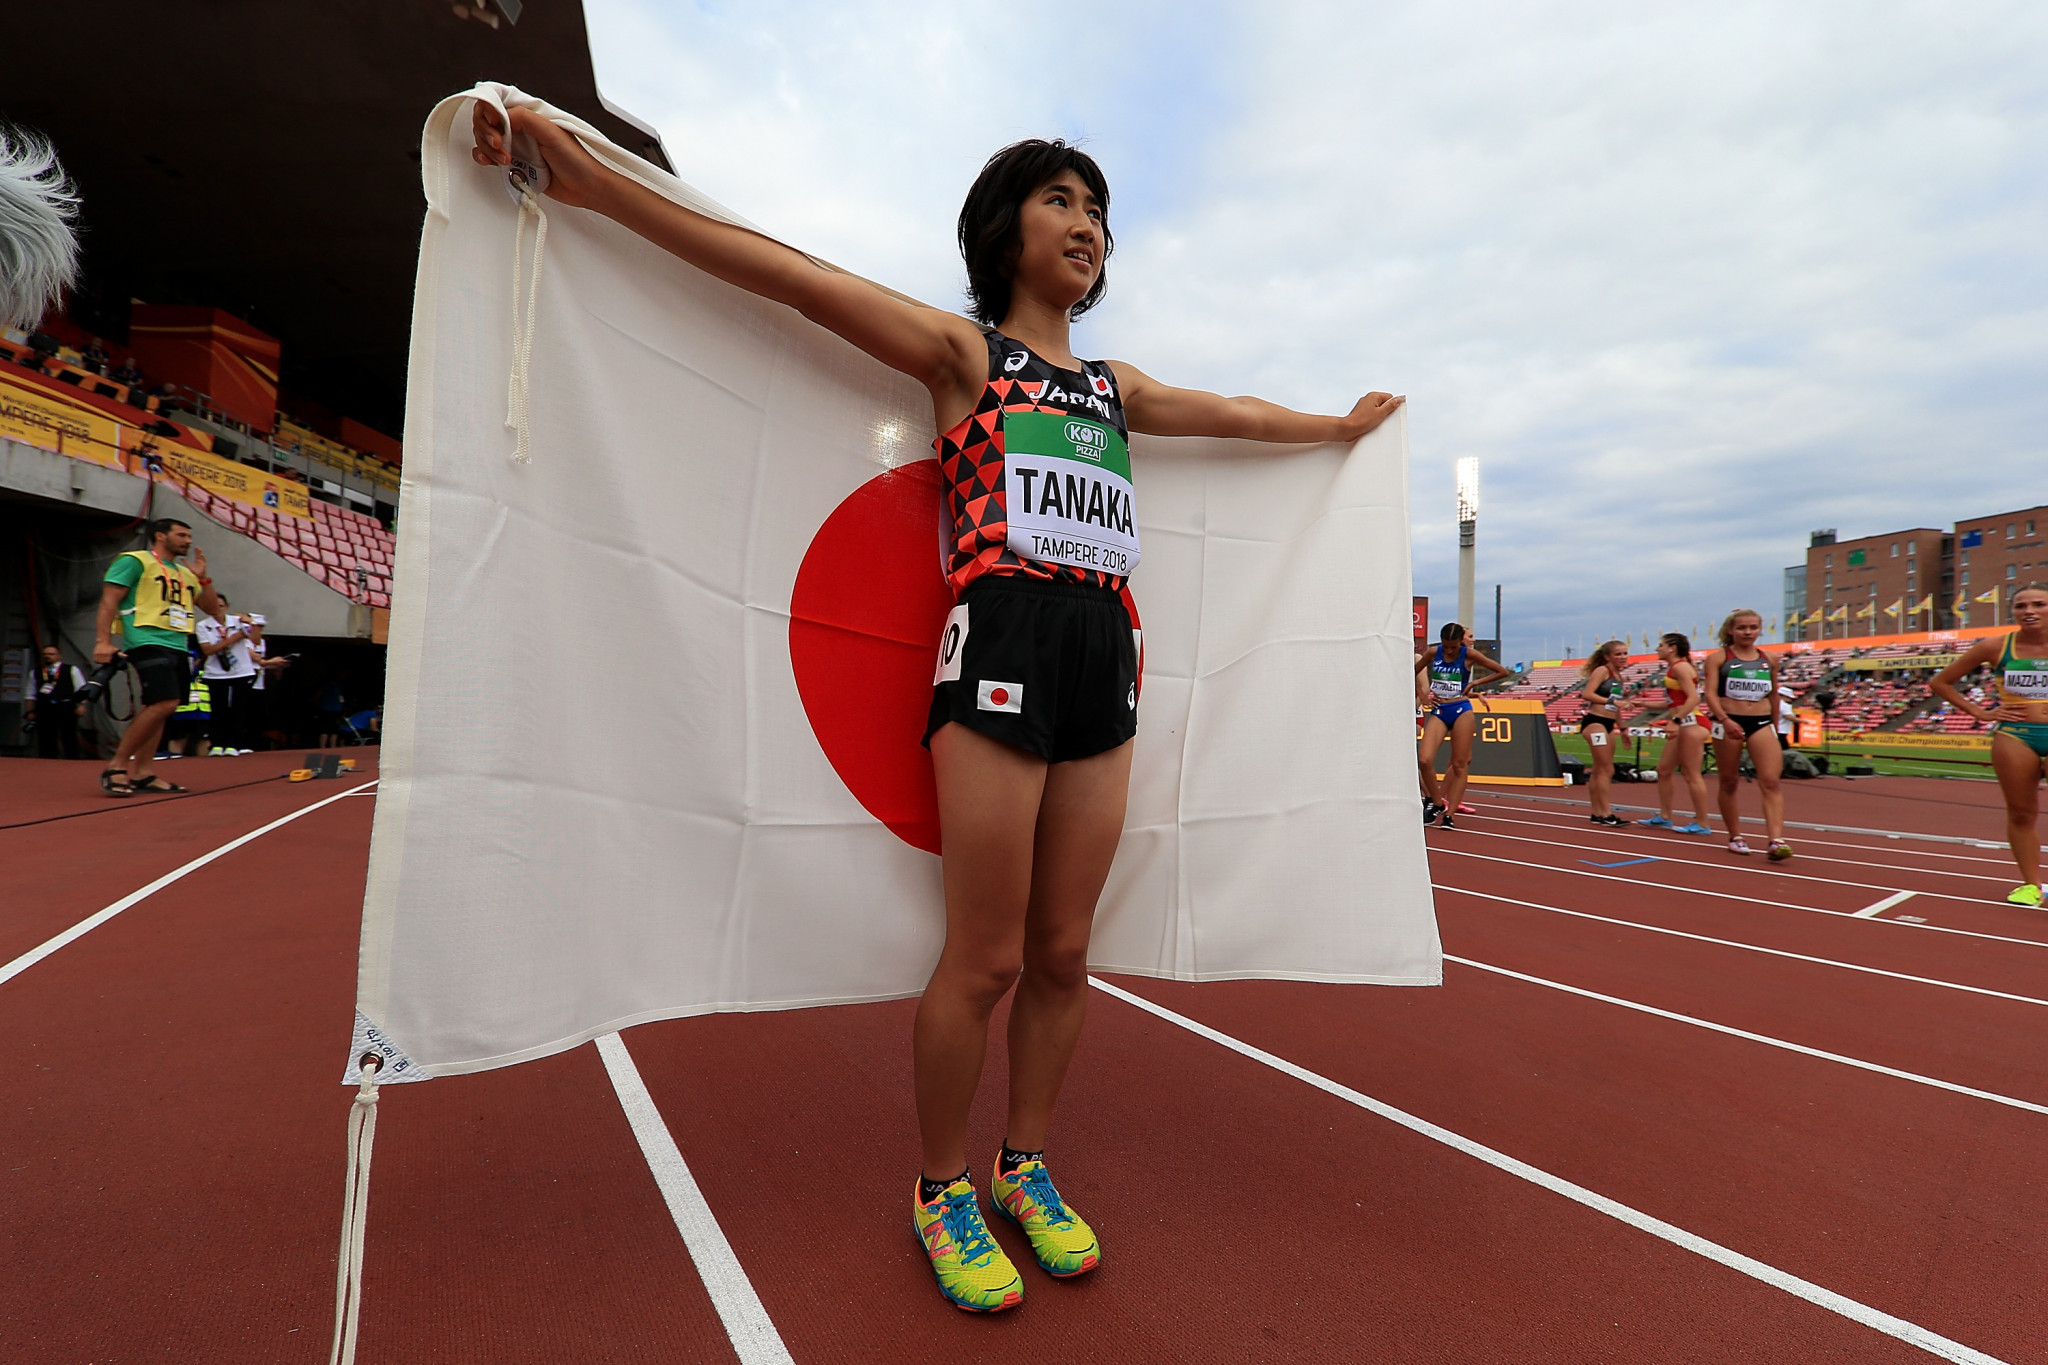 Nozomi Tanaka was one of two Japanese gold medal winners on the second day of competition ©Getty Images